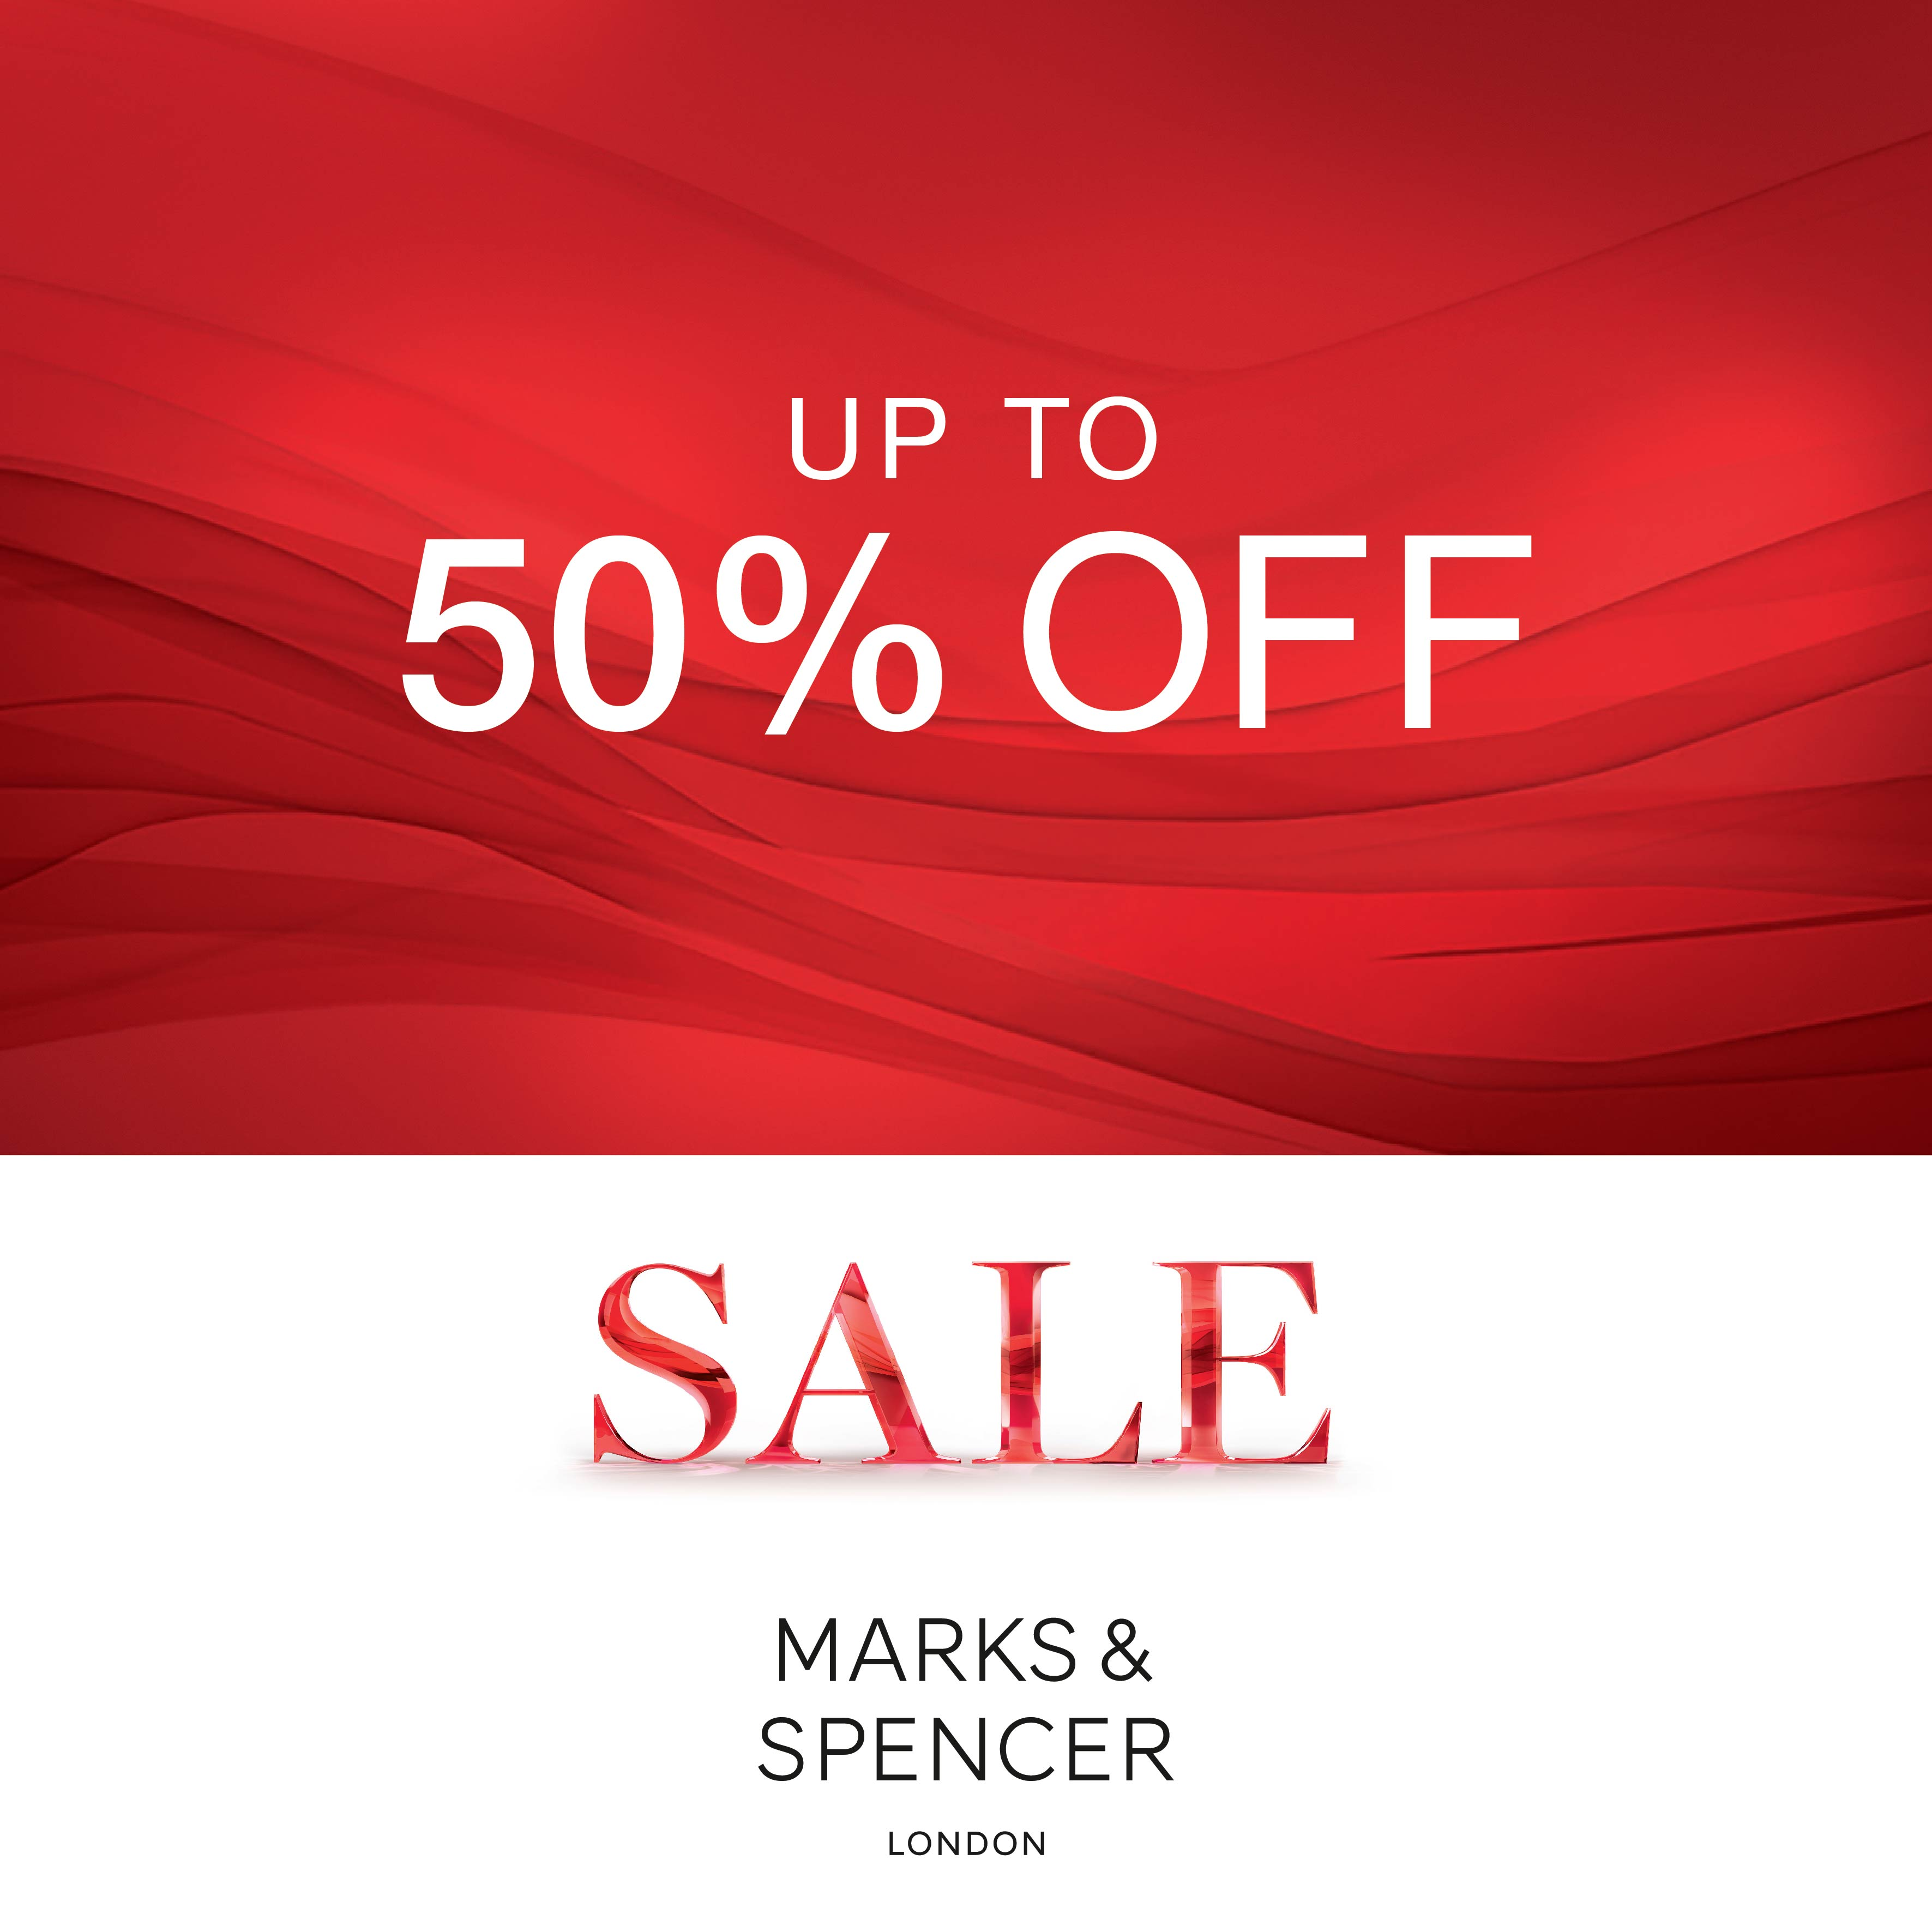 SALE M&S UP TO 50% OFF